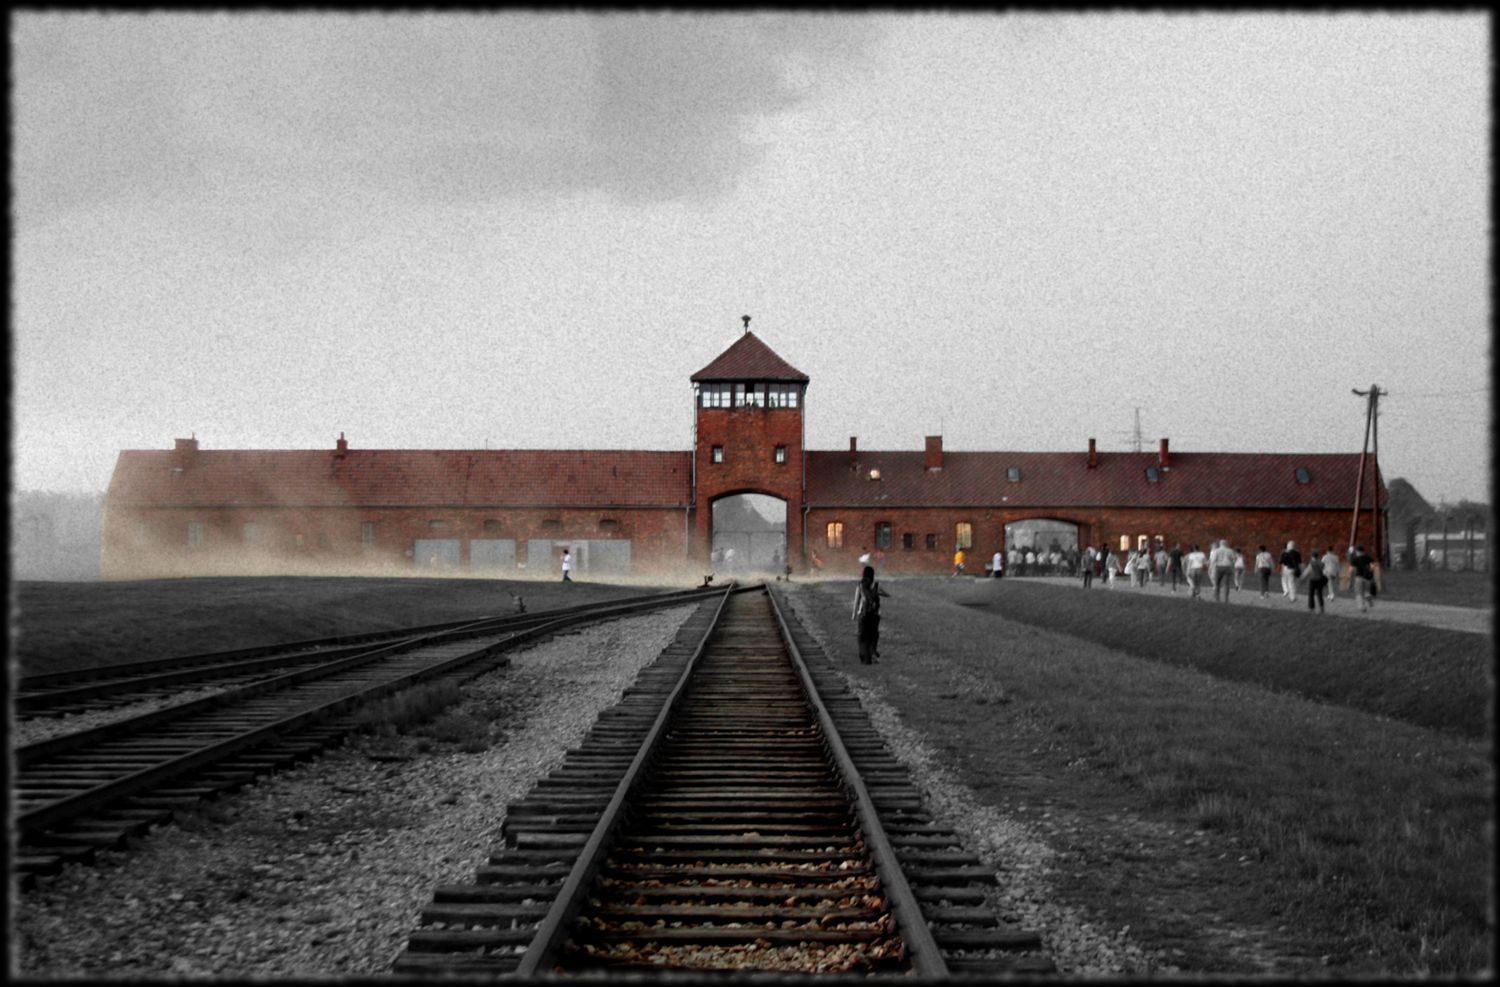 Auschwitz-Birkenau. Preserved history in their ruins